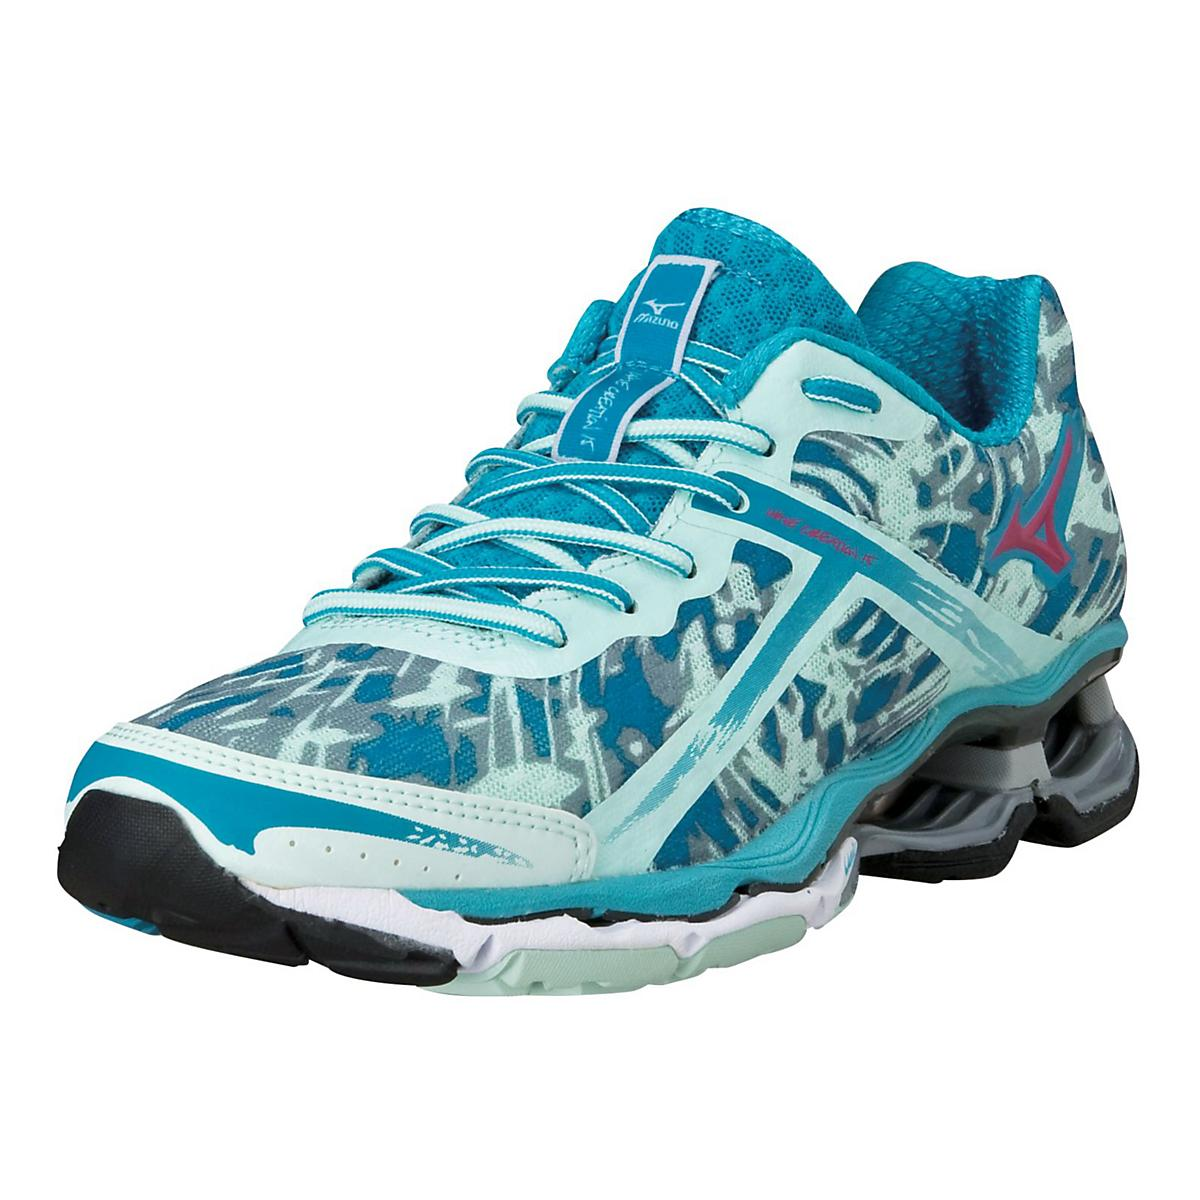 Womens Mizuno Wave Creation 15 Running Shoe at Road Runner Sports f9f6a26fd7